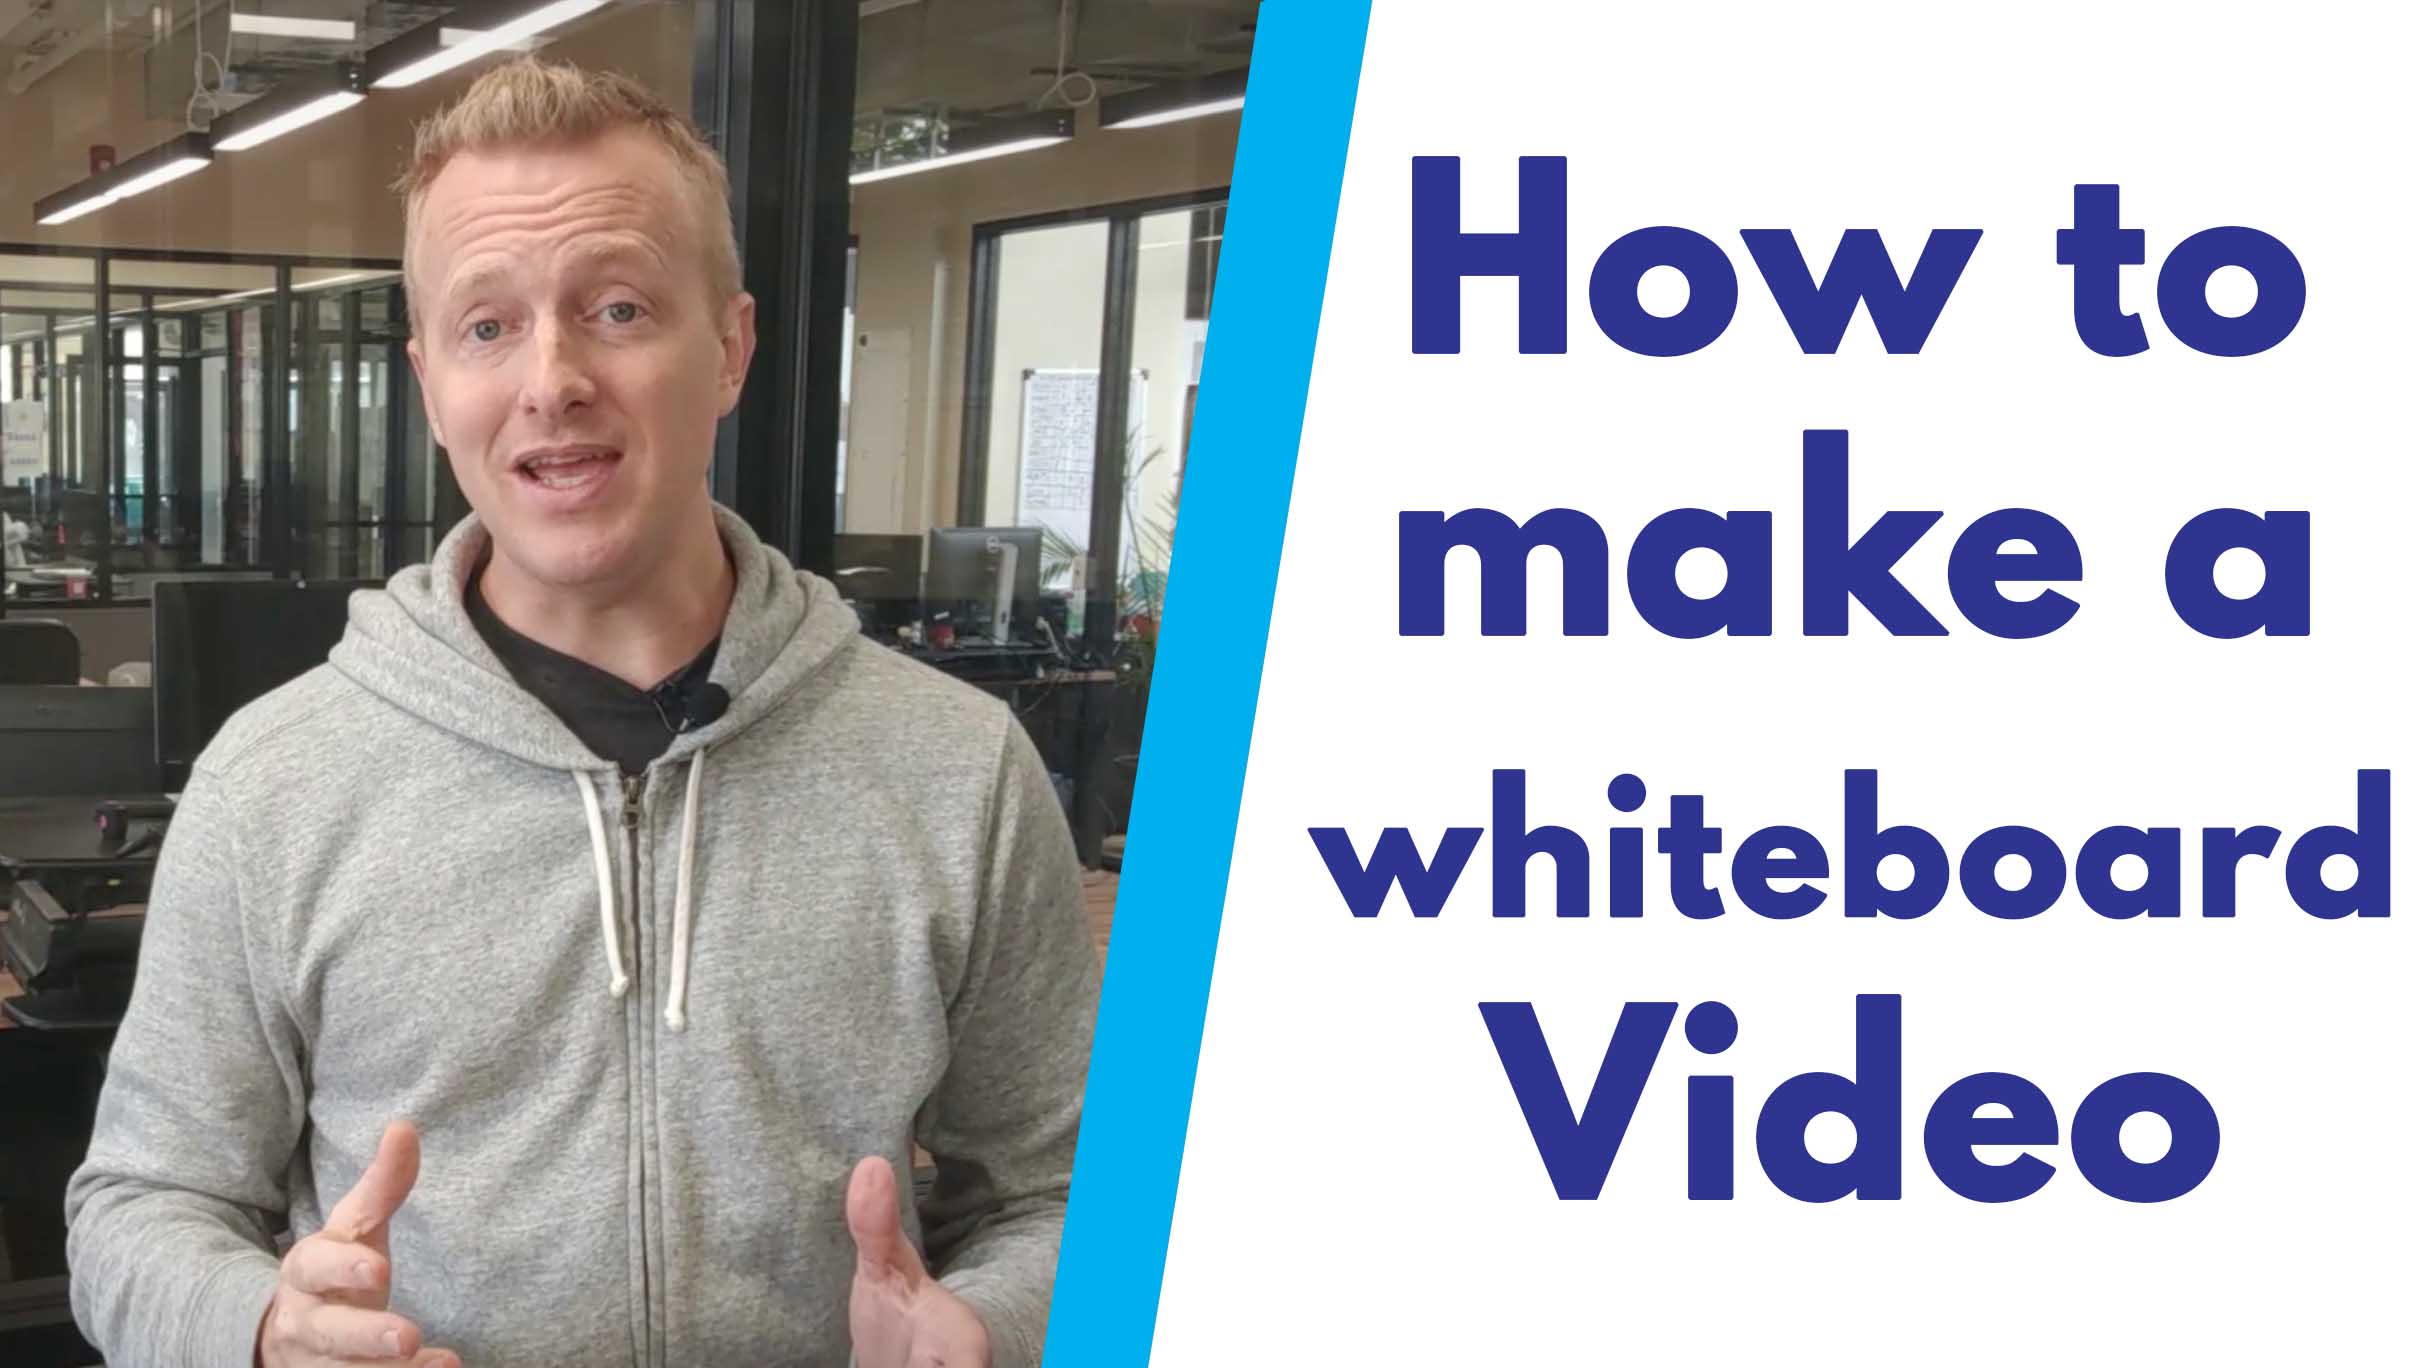 How to WB video Thumbnail